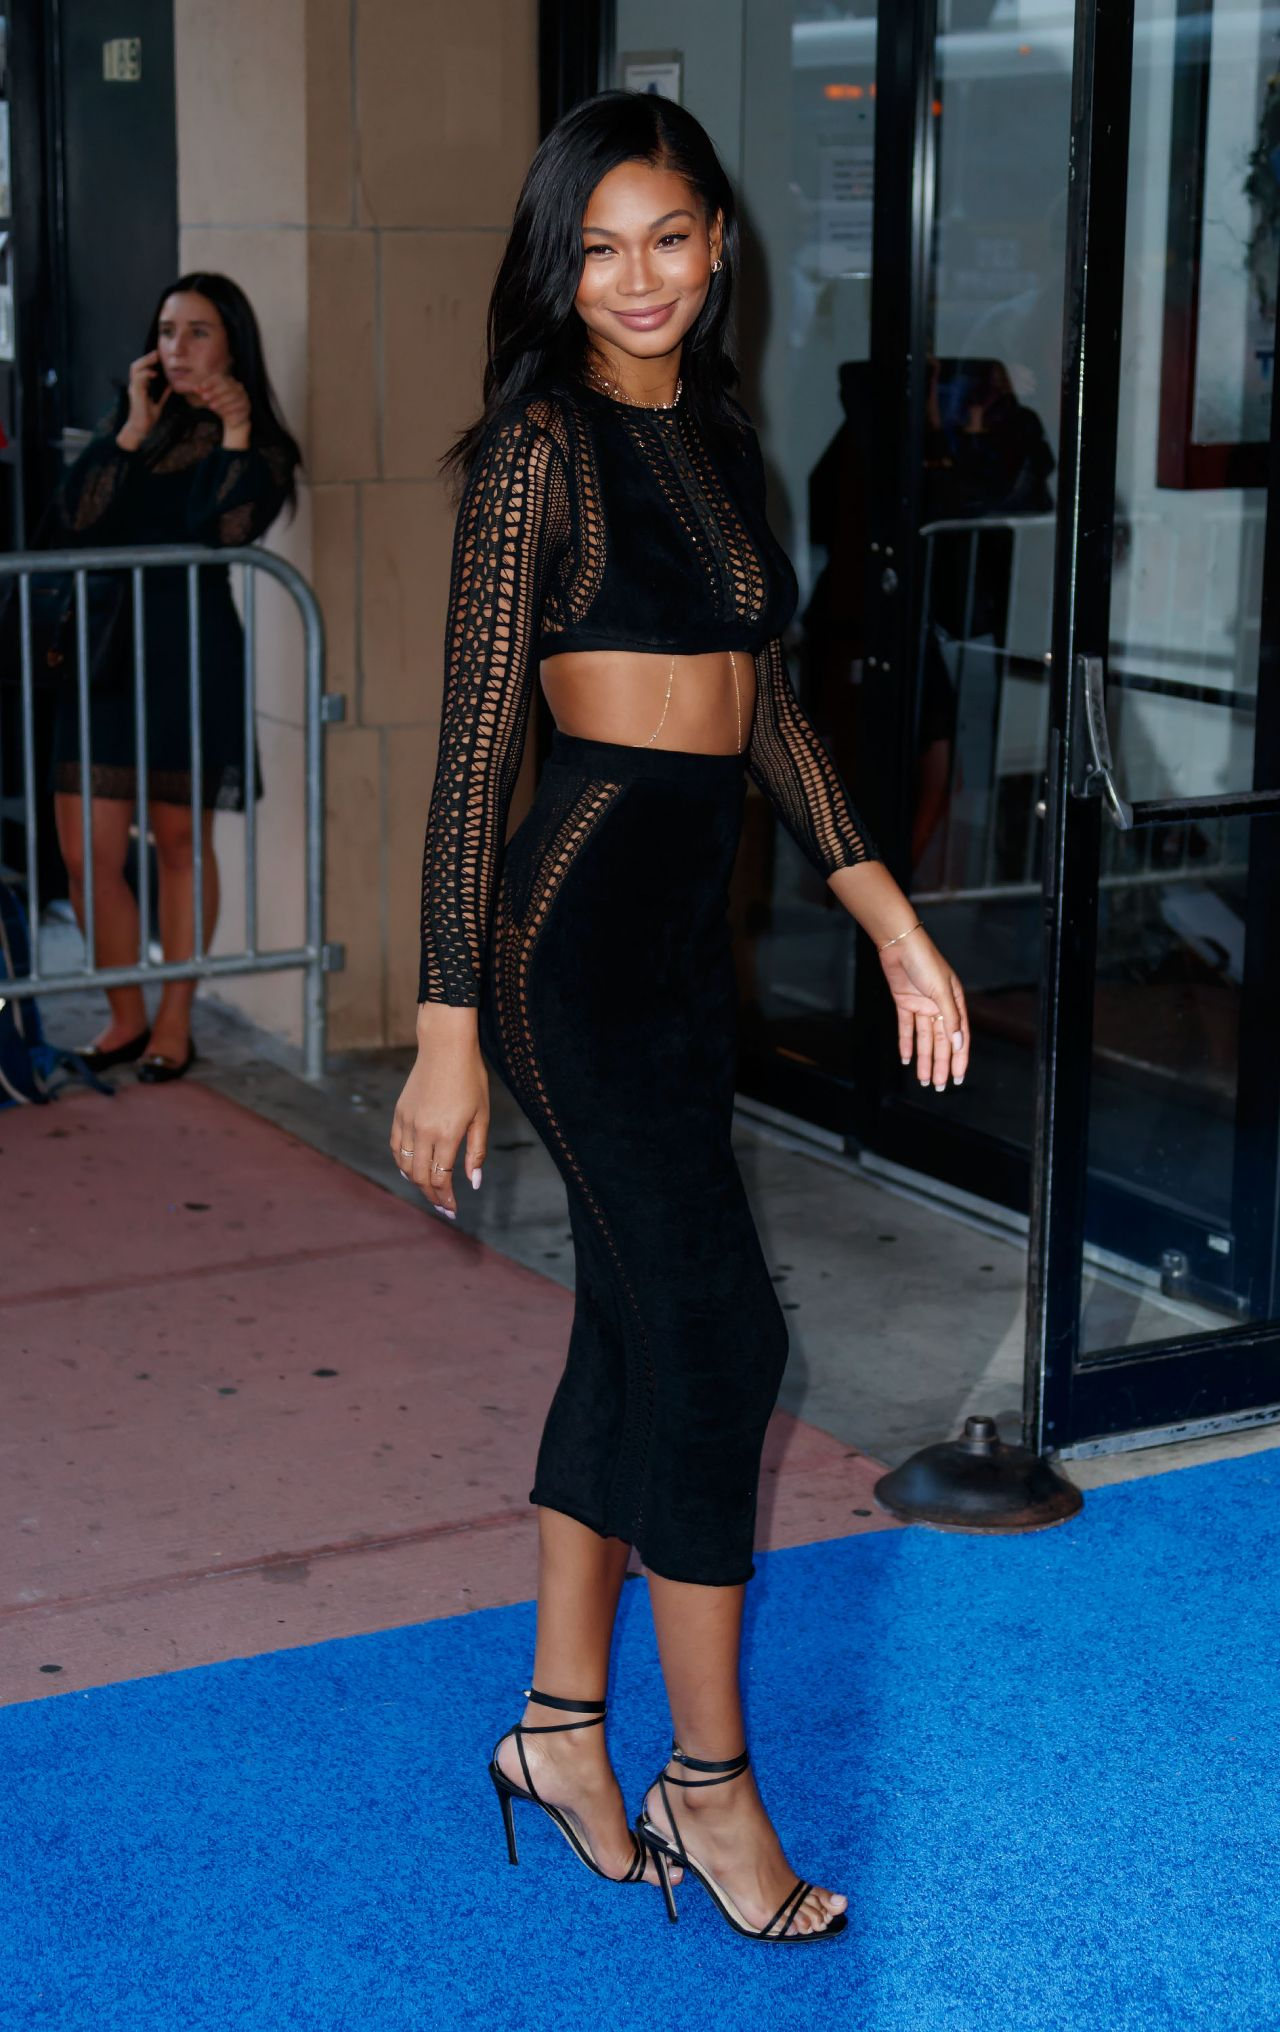 Chanel Iman The Tick Premiere In Nyc 08 16 2017